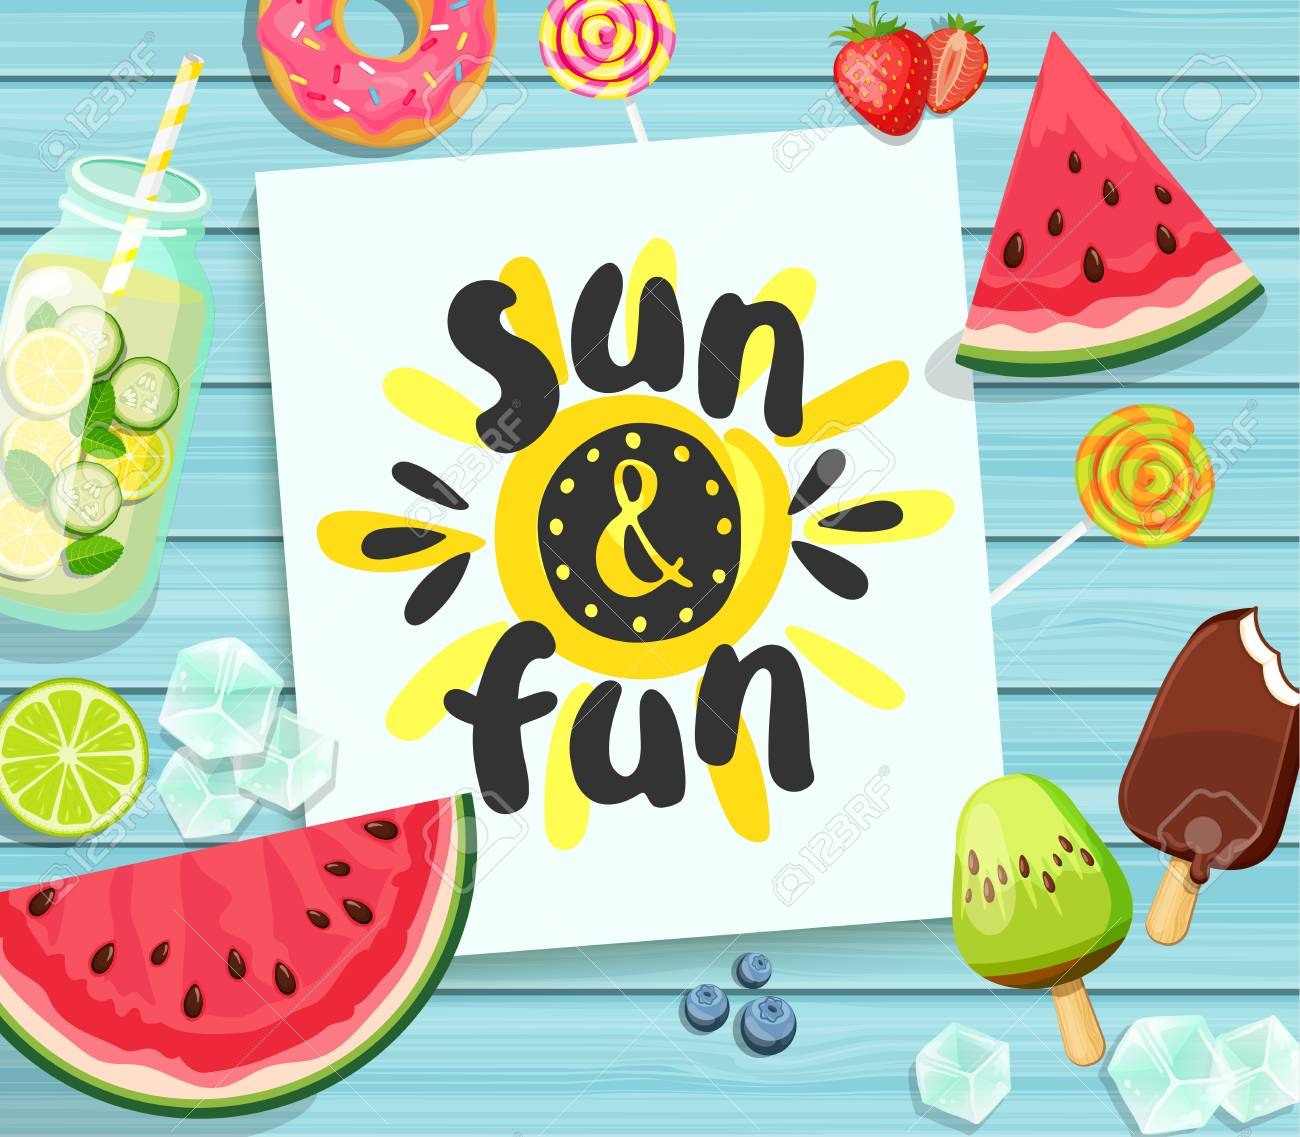 Sun and Fun card on blue wooden background. - 80177677